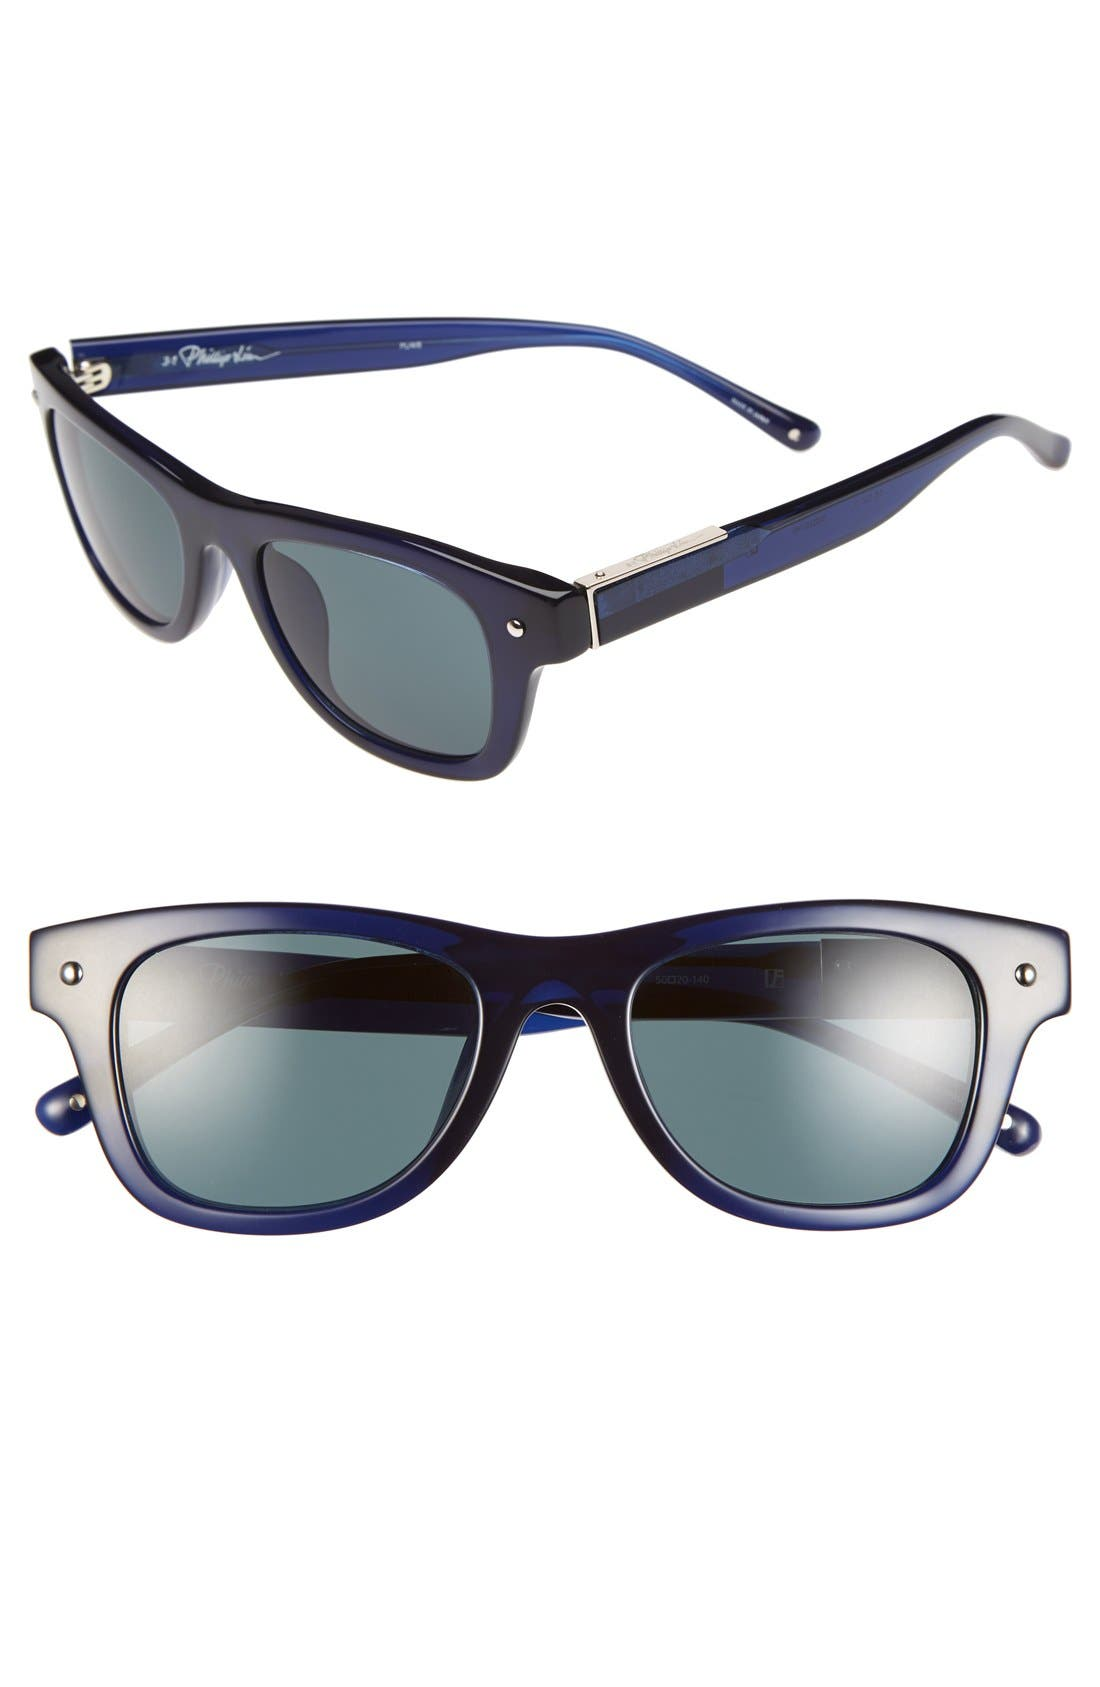 Alternate Image 1 Selected - 3.1 Phillip Lim 50mm Sunglasses